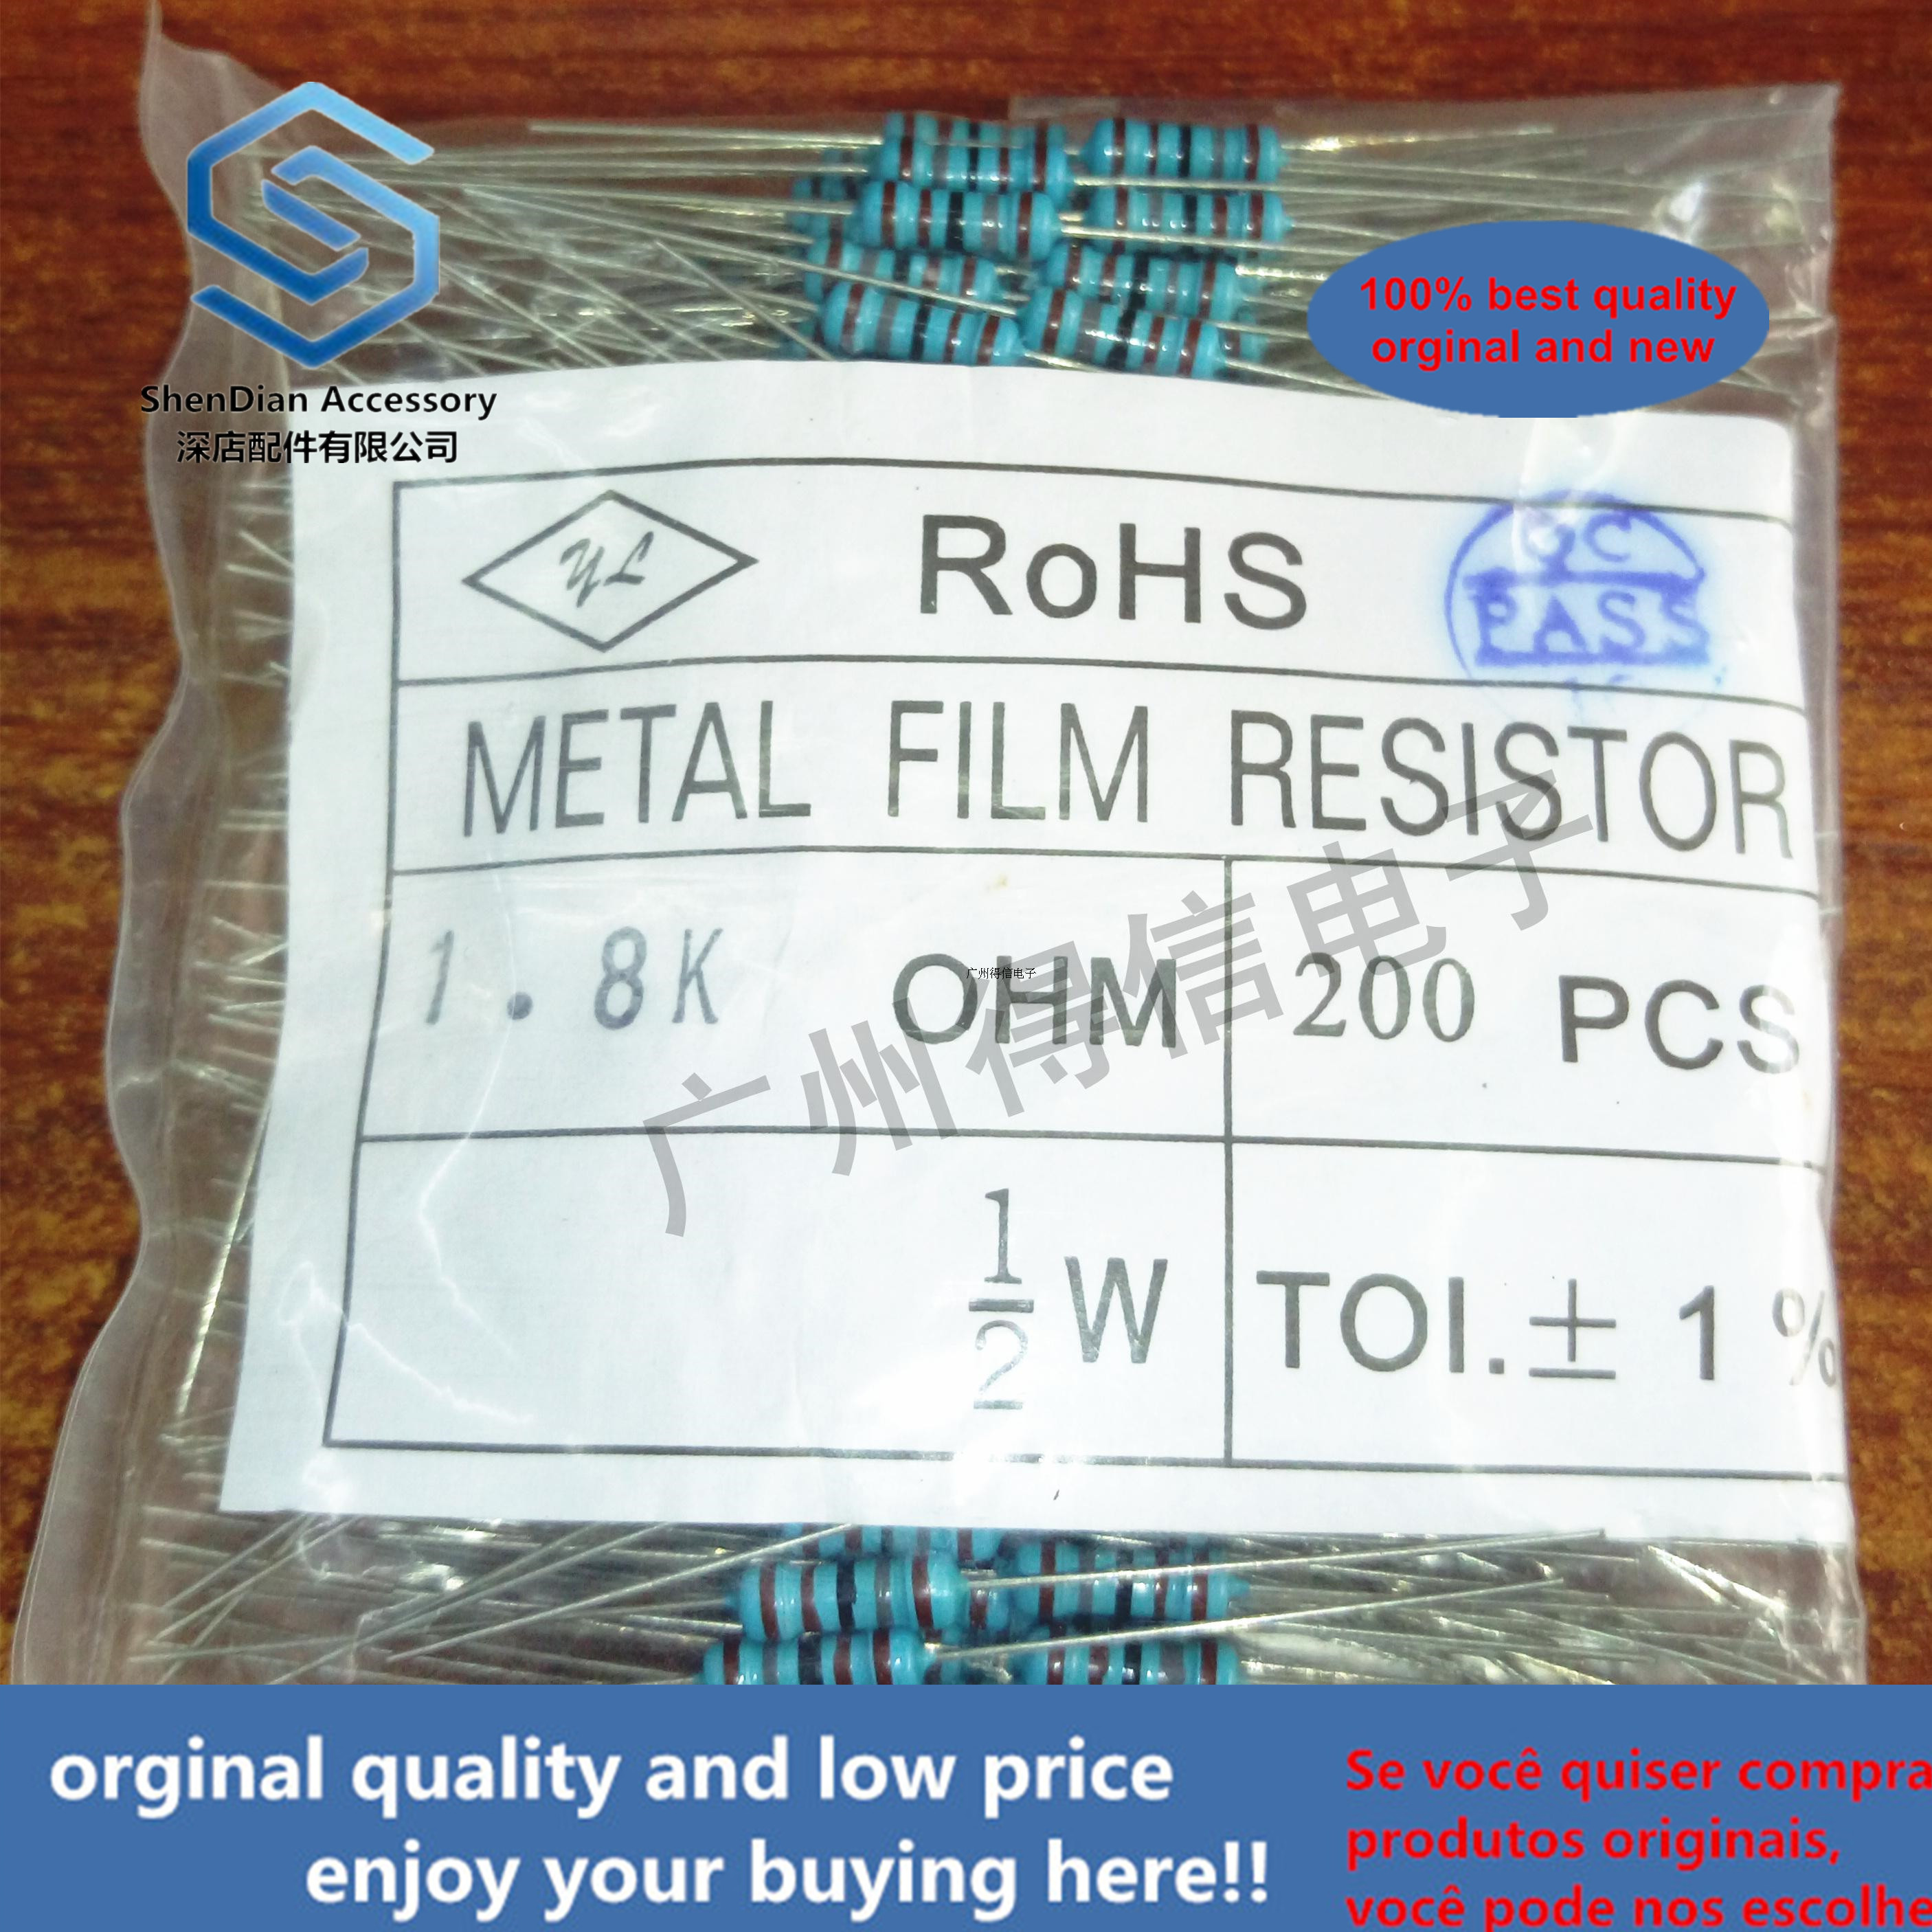 200pcs 1 / 2W 4.3K 4300 Euro 1% Brand New Metal Film Iron Feet Resistor Bag 200 Pcs Per Pack